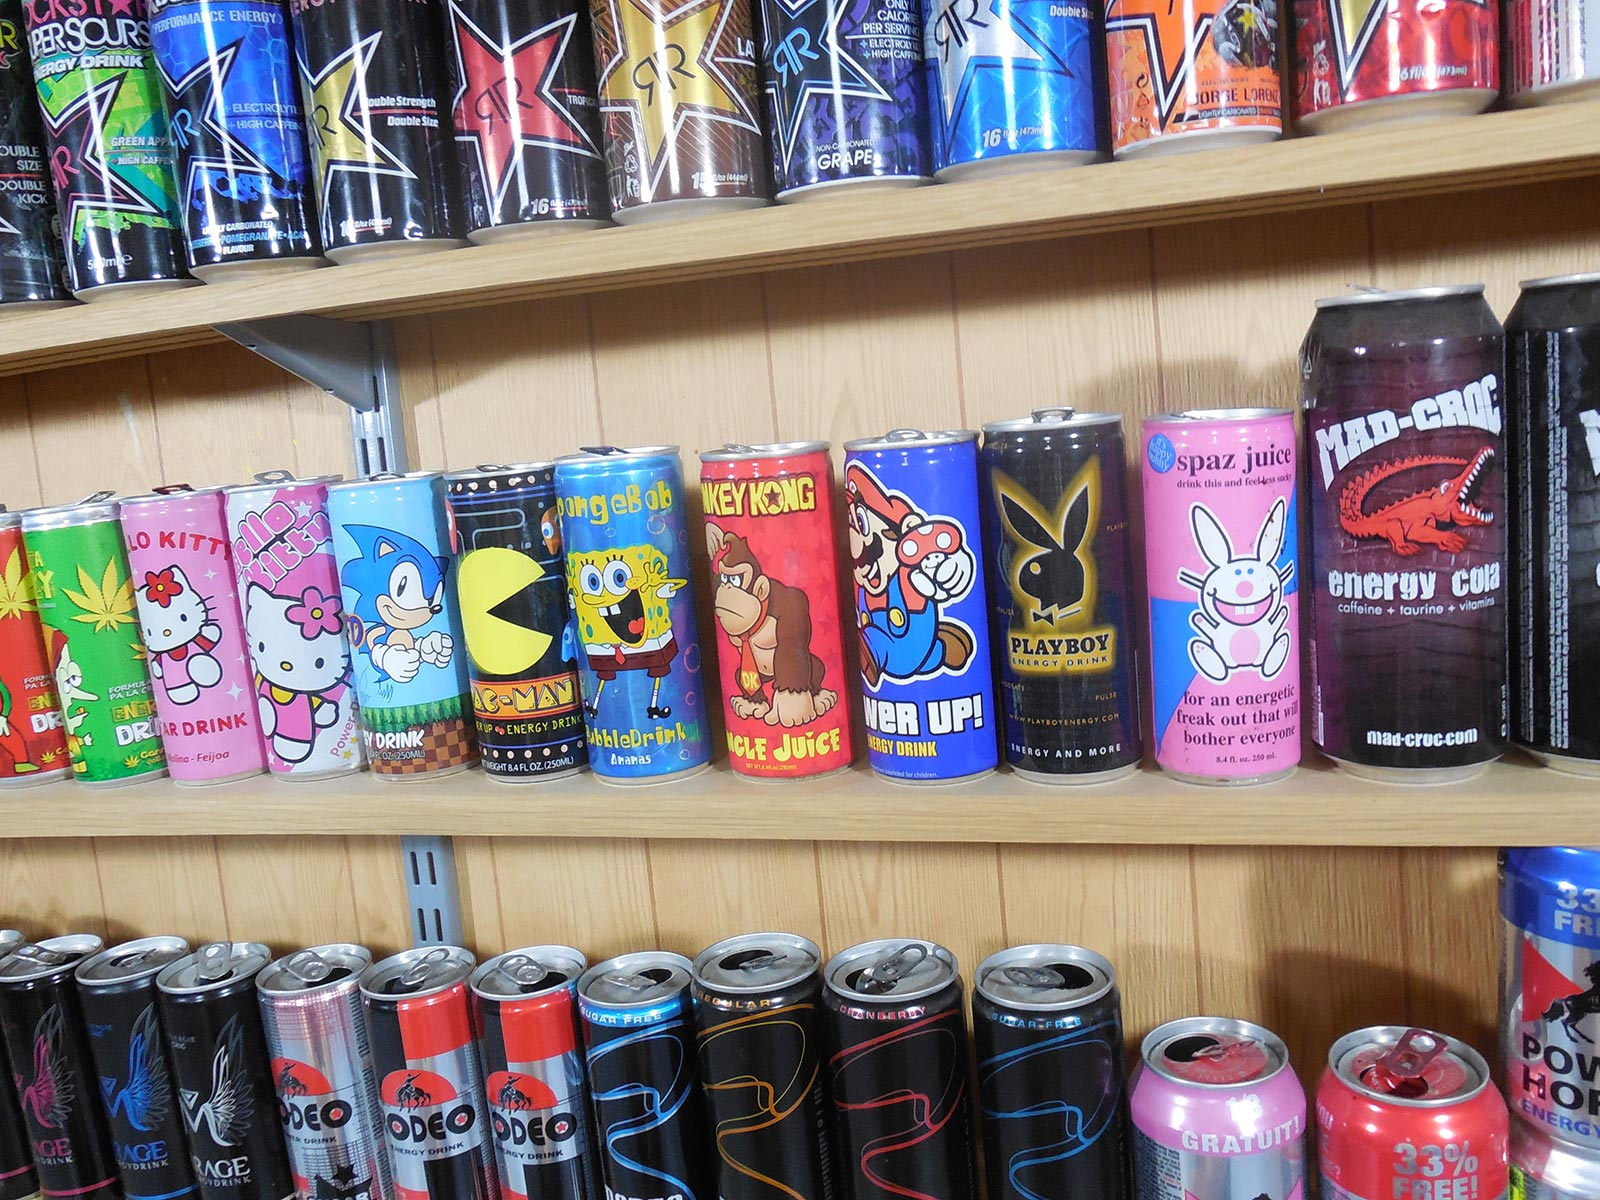 Collection Boston America corp Energy drink